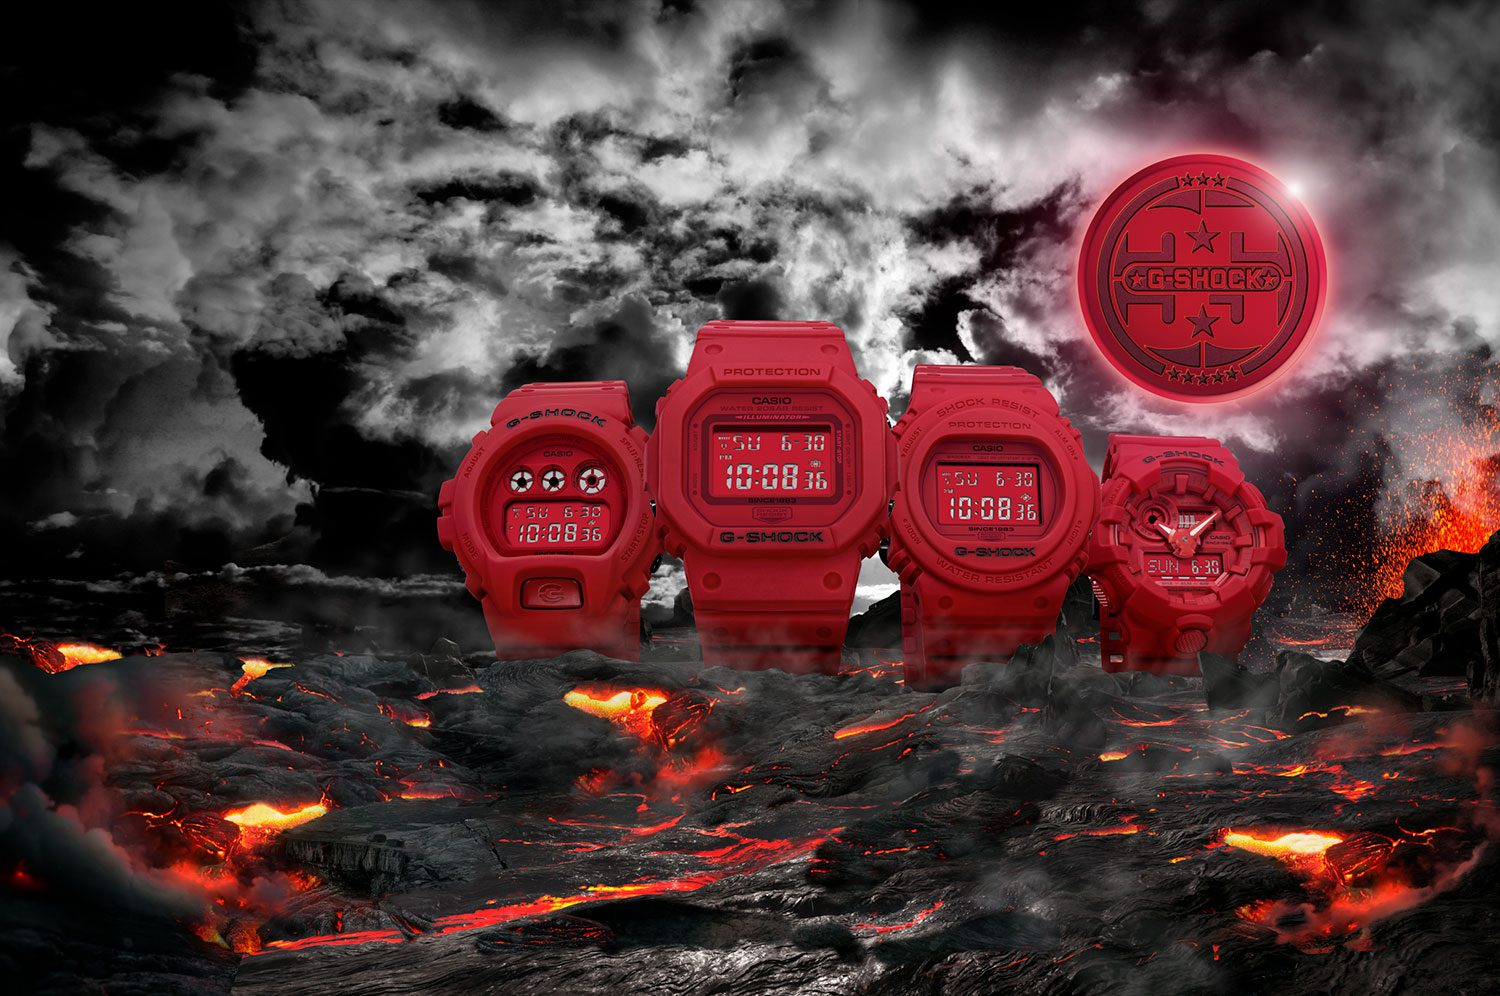 CASIO 35th Anniversary G-SHOCK RED-OUT Collection